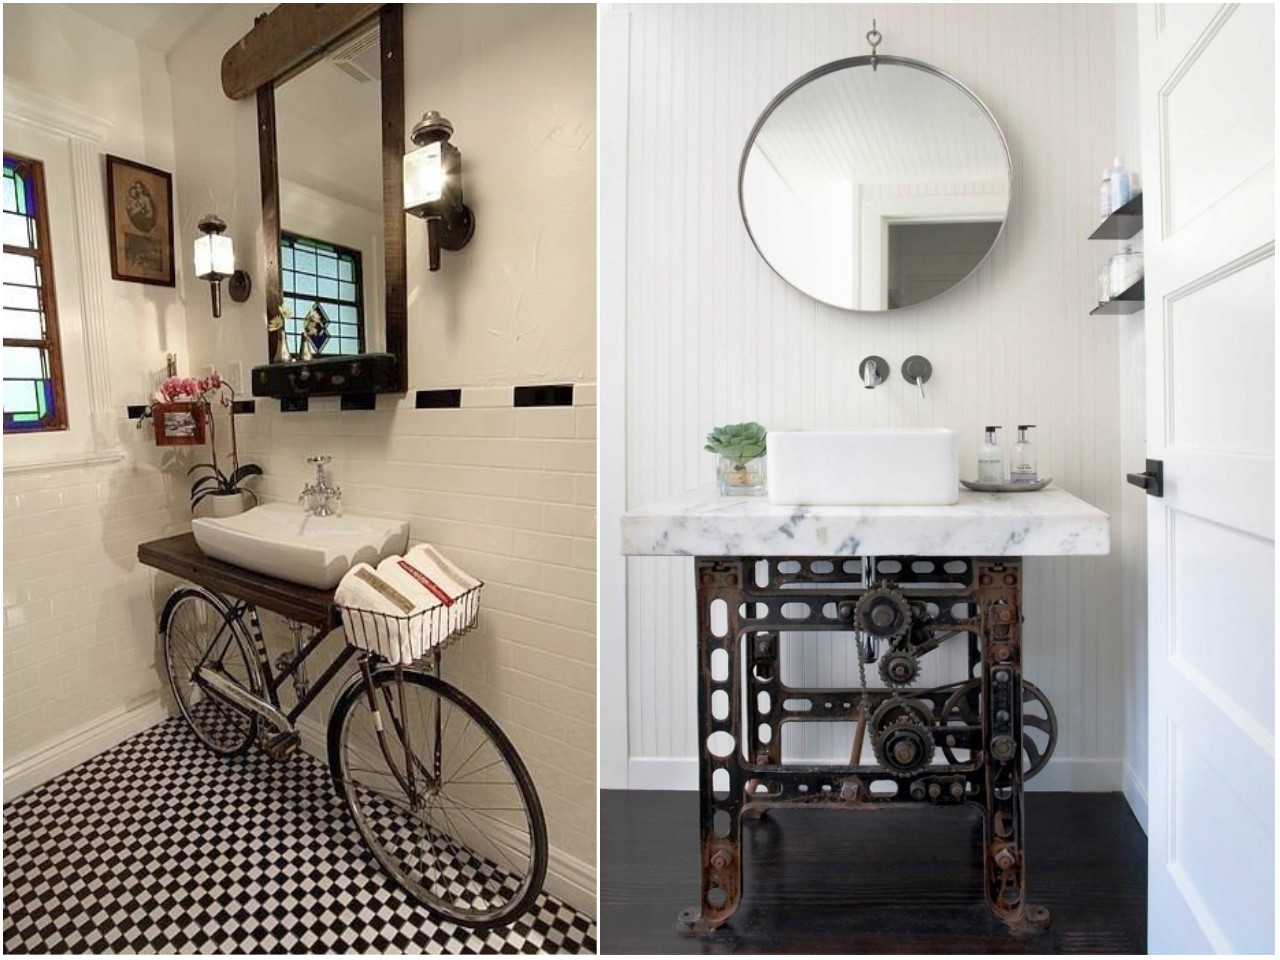 8 ideas trending para decorar ba os con estilo for Decoracion de cuartos de bano fotos